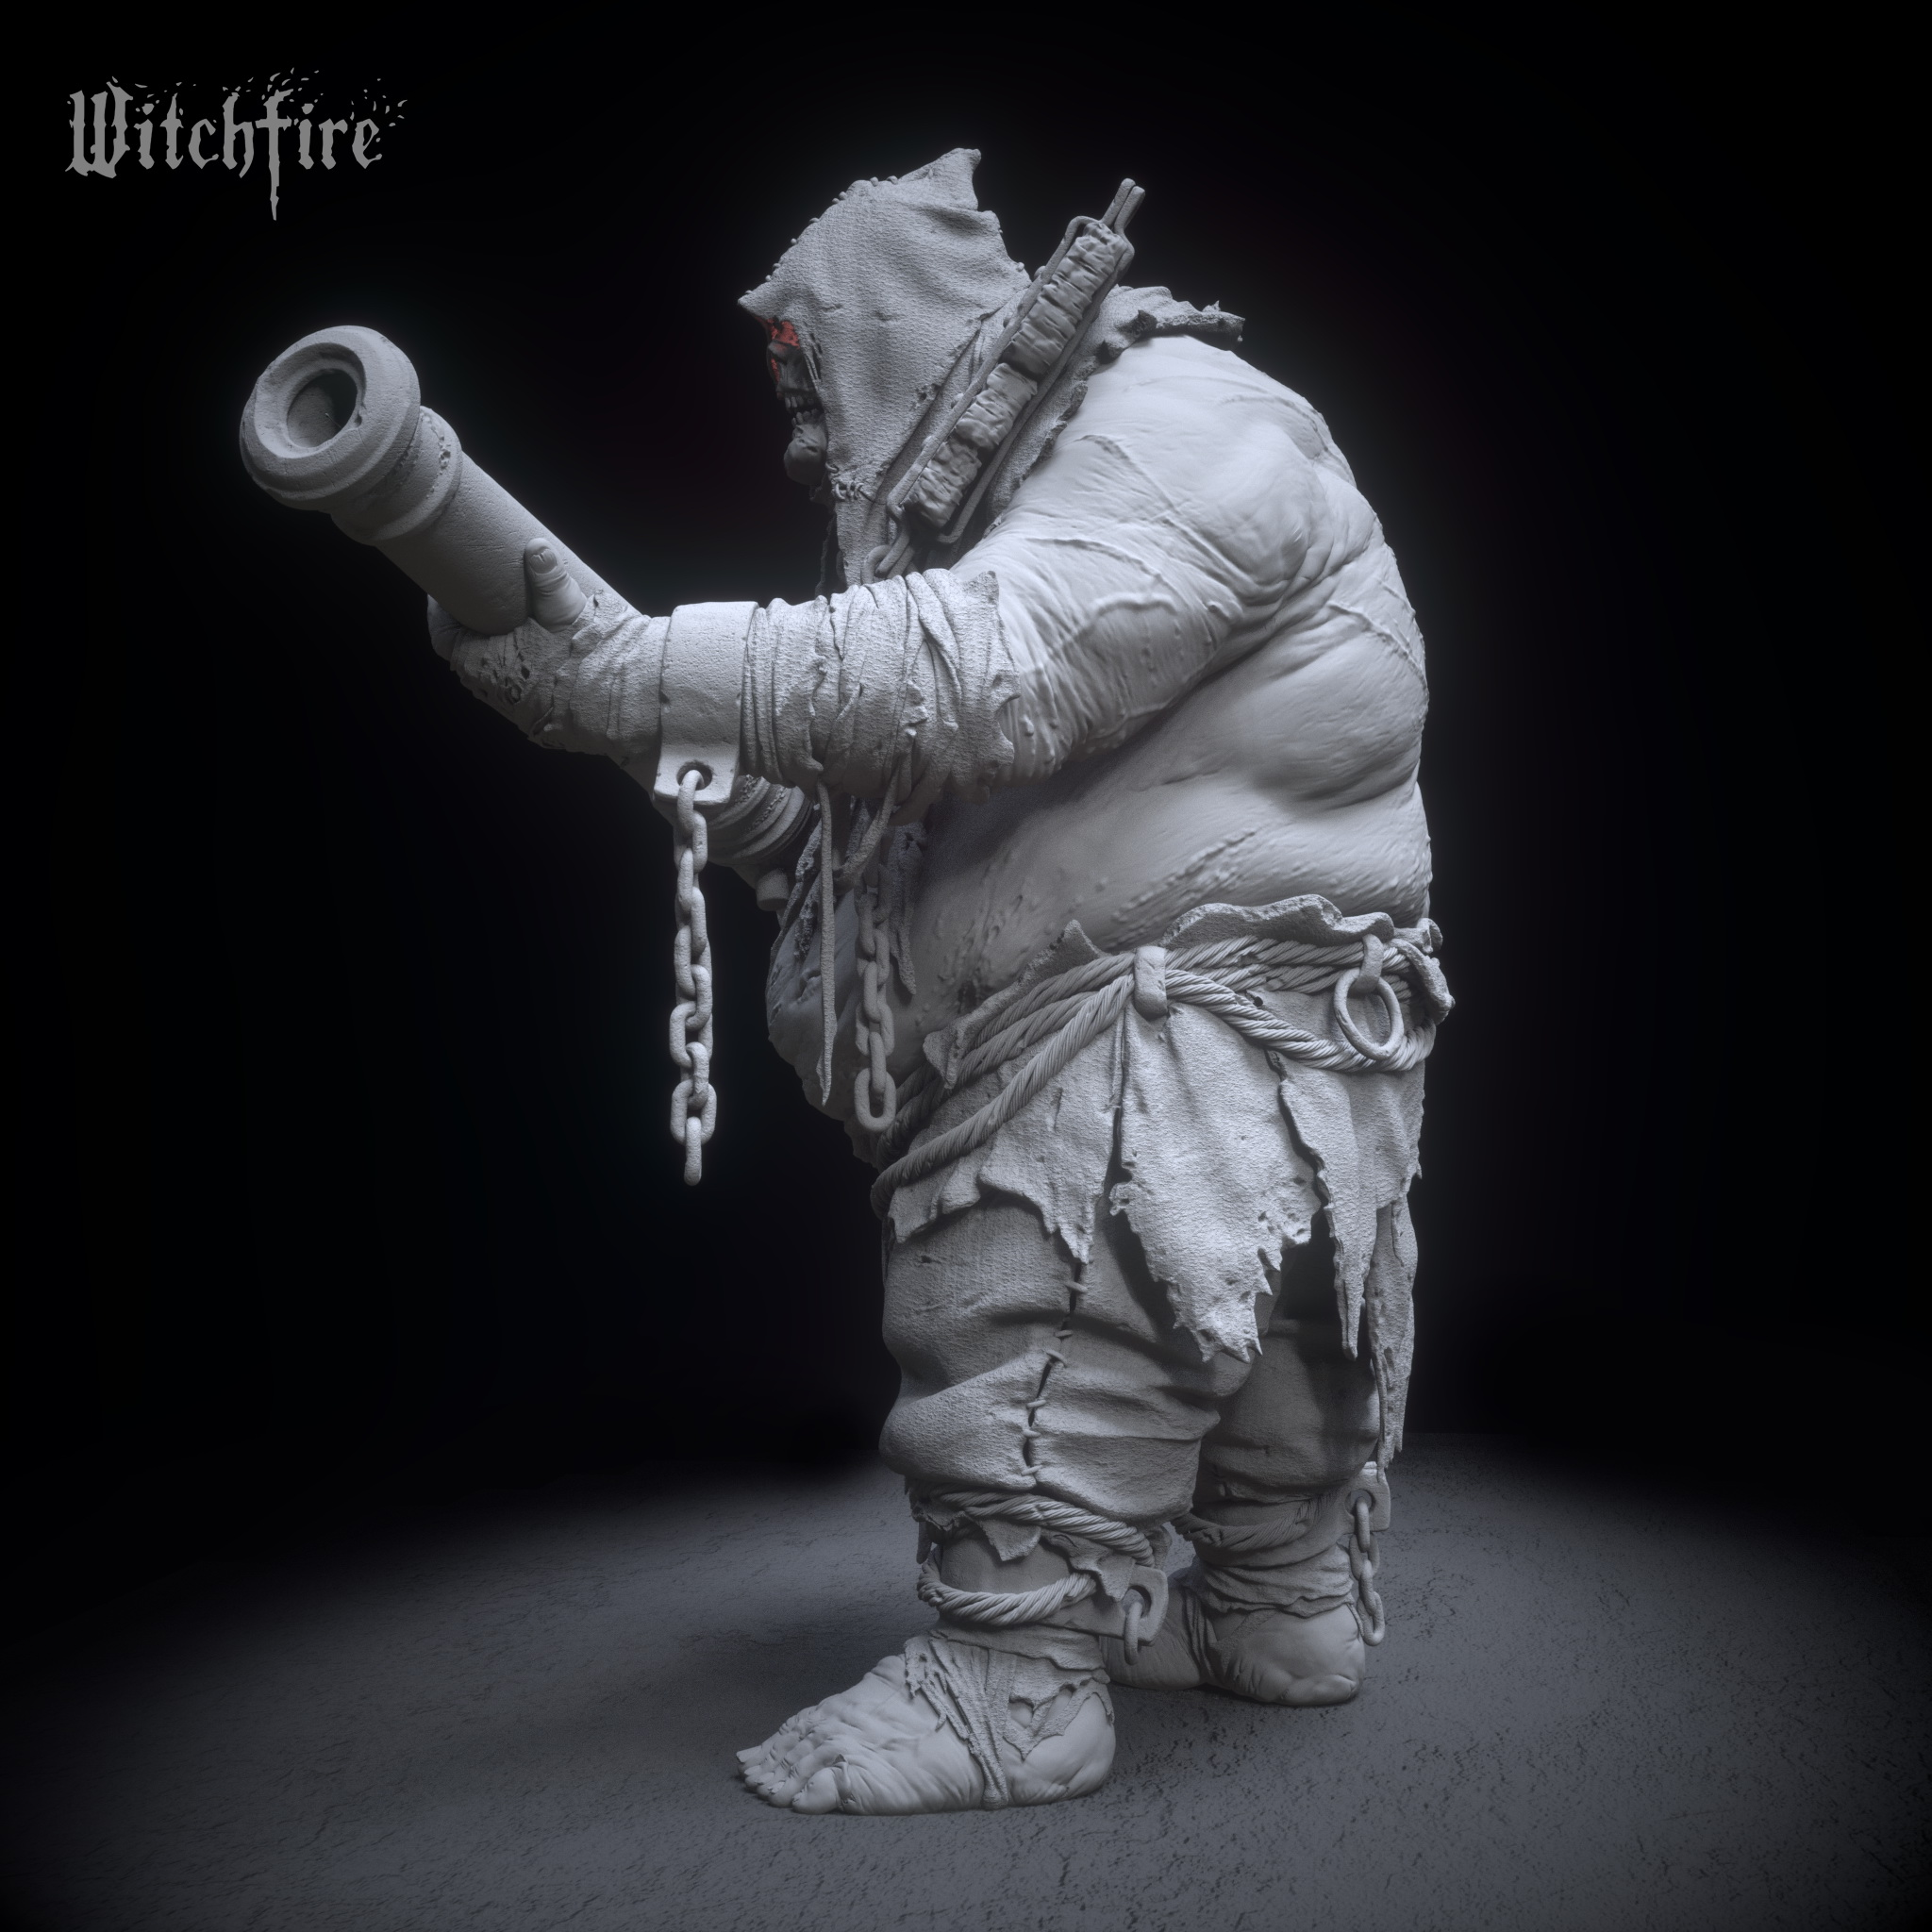 witchfire_ogr_render_23_clay.jpg